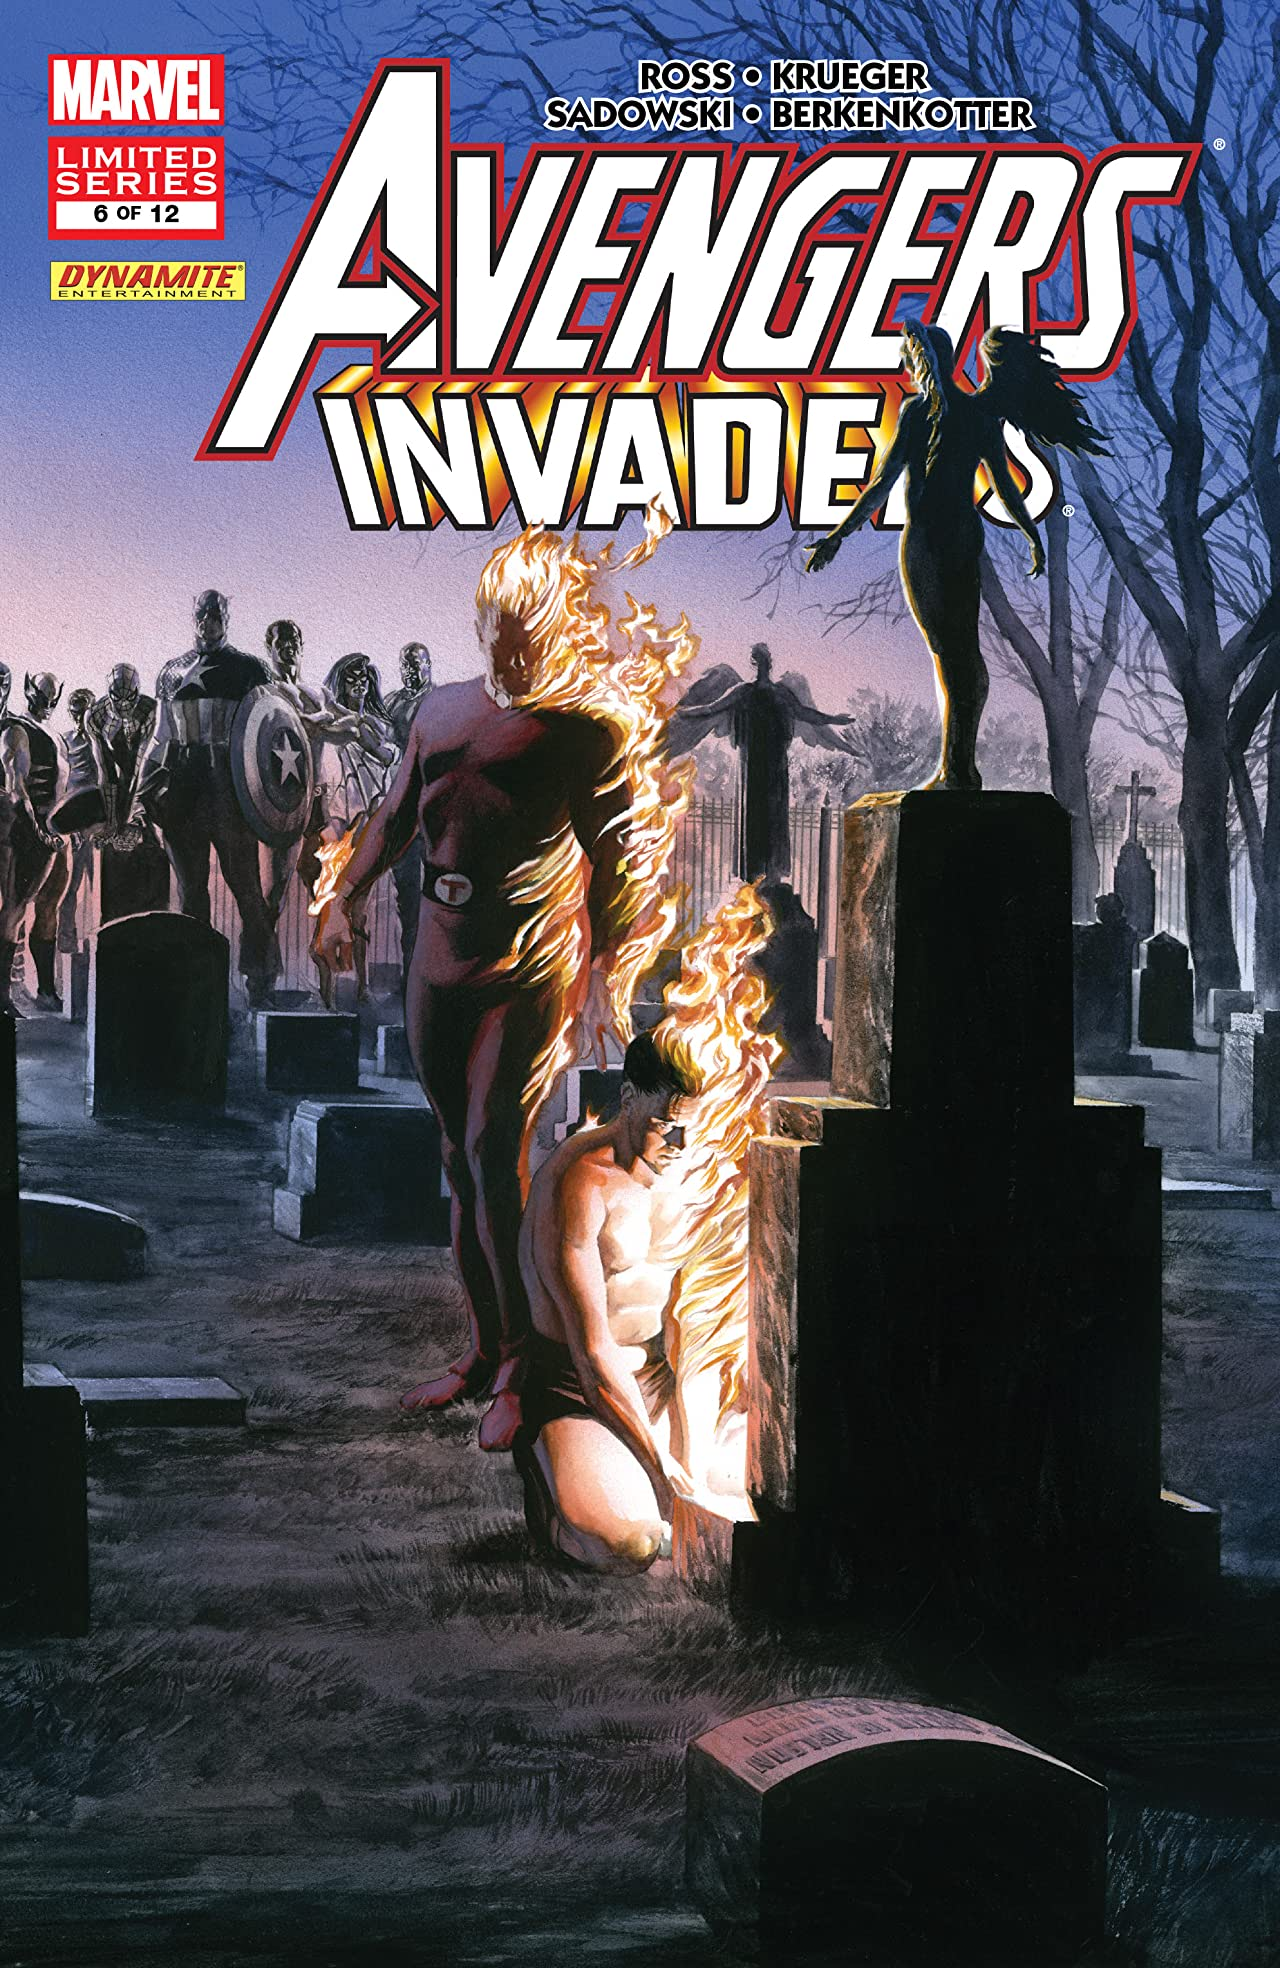 Avengers/Invaders (2008-2009) #6 (of 12)